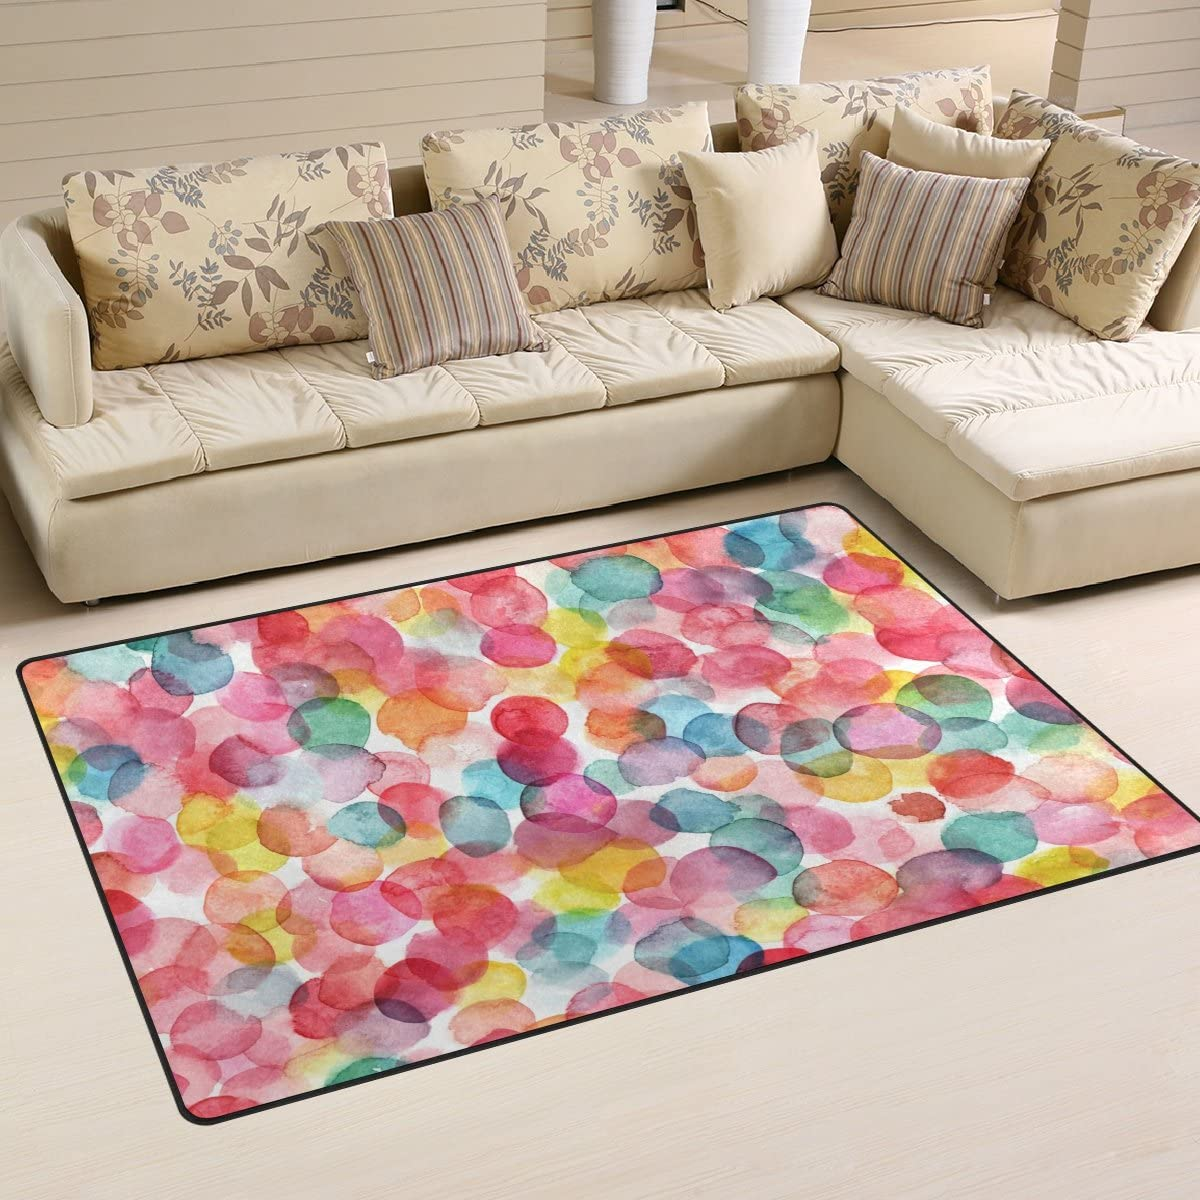 Yochoice Non-slip Area Rugs Home Decor, Watercolor Colorful Polka Dot Floor Mat Living Room Bedroom Carpets Doormats 60 x 39 inches